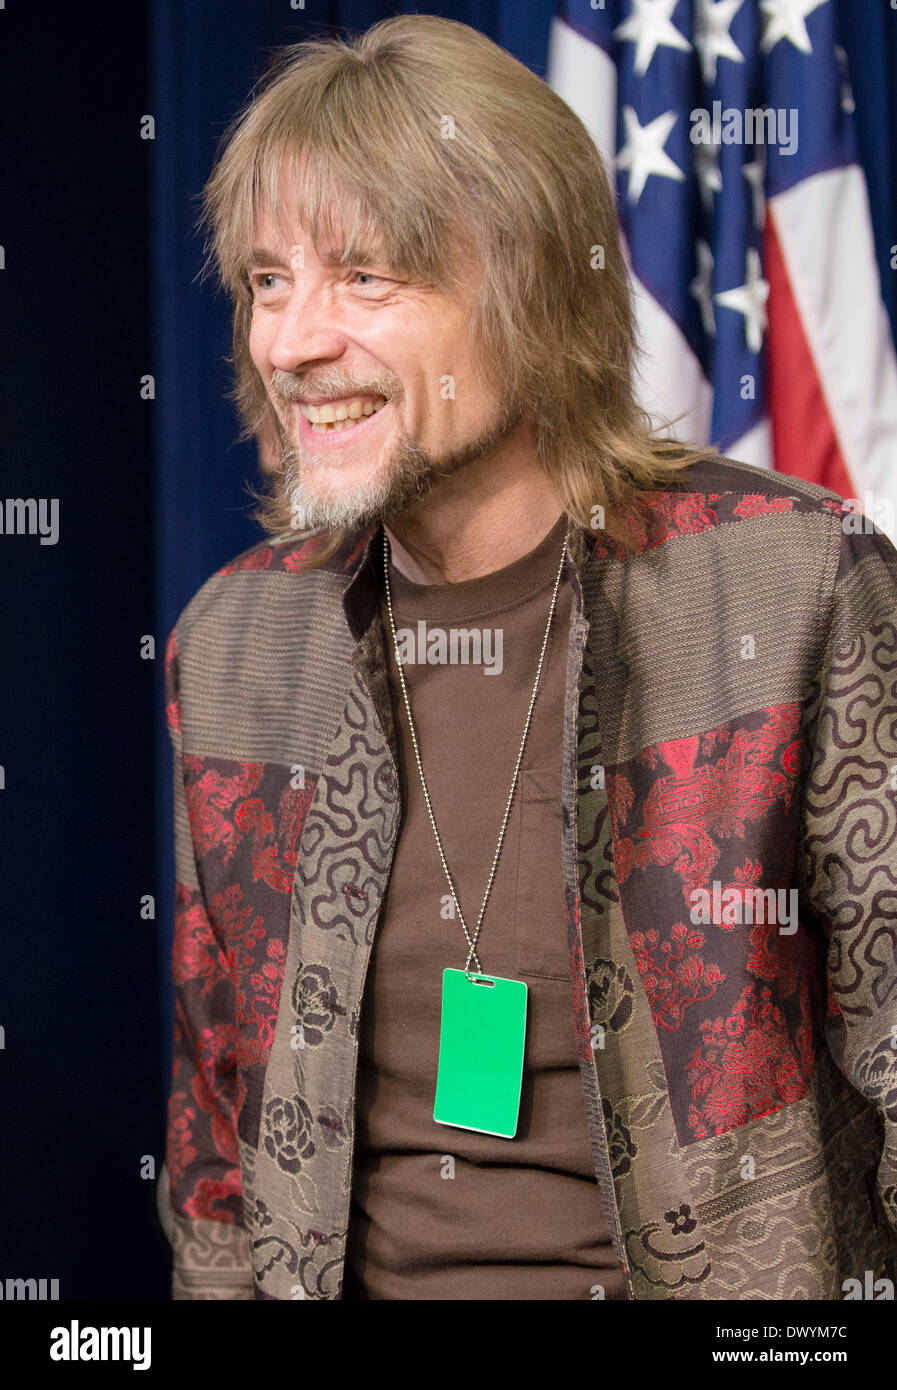 Kermit the Frog puppeteer, Steve Whitmire, welcomes military families to a movie screening of the new Muppets movie, 'Muppets Most Wanted', at the White House March 12, 2014 in Washington, DC. - Stock Image